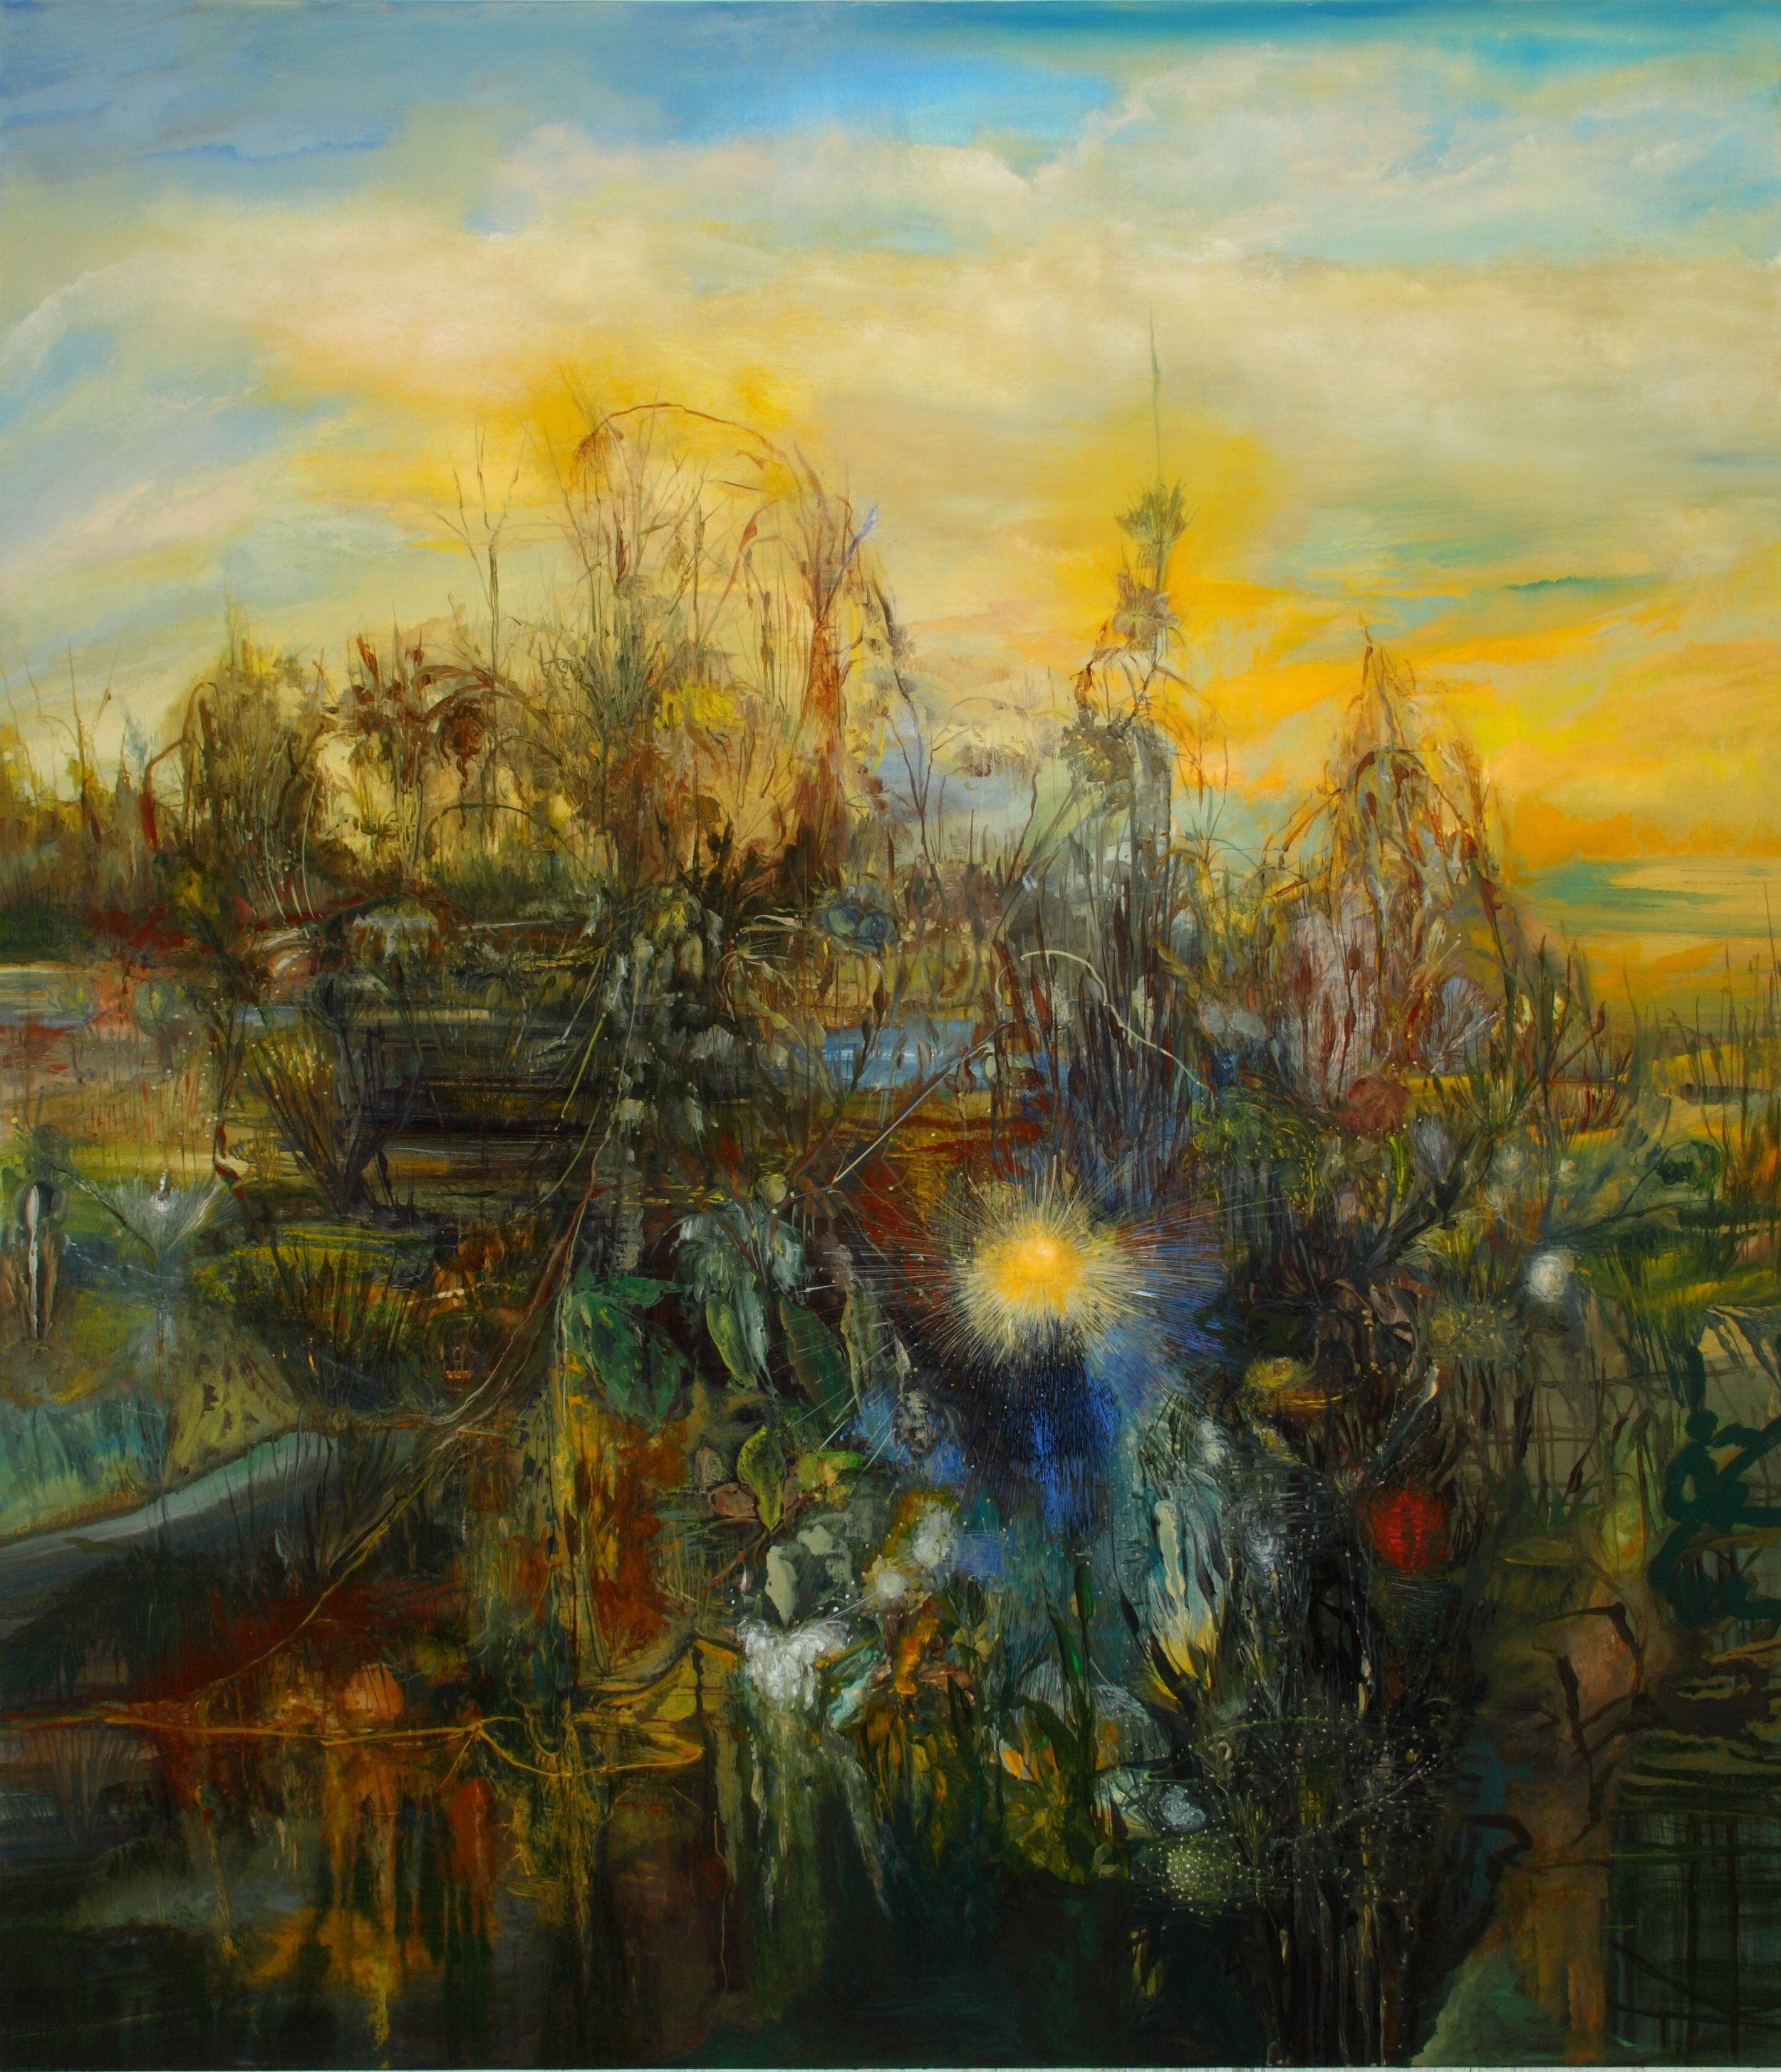 Shaggy Land, 2011, 78 x 66 inches, acrylic on canvas